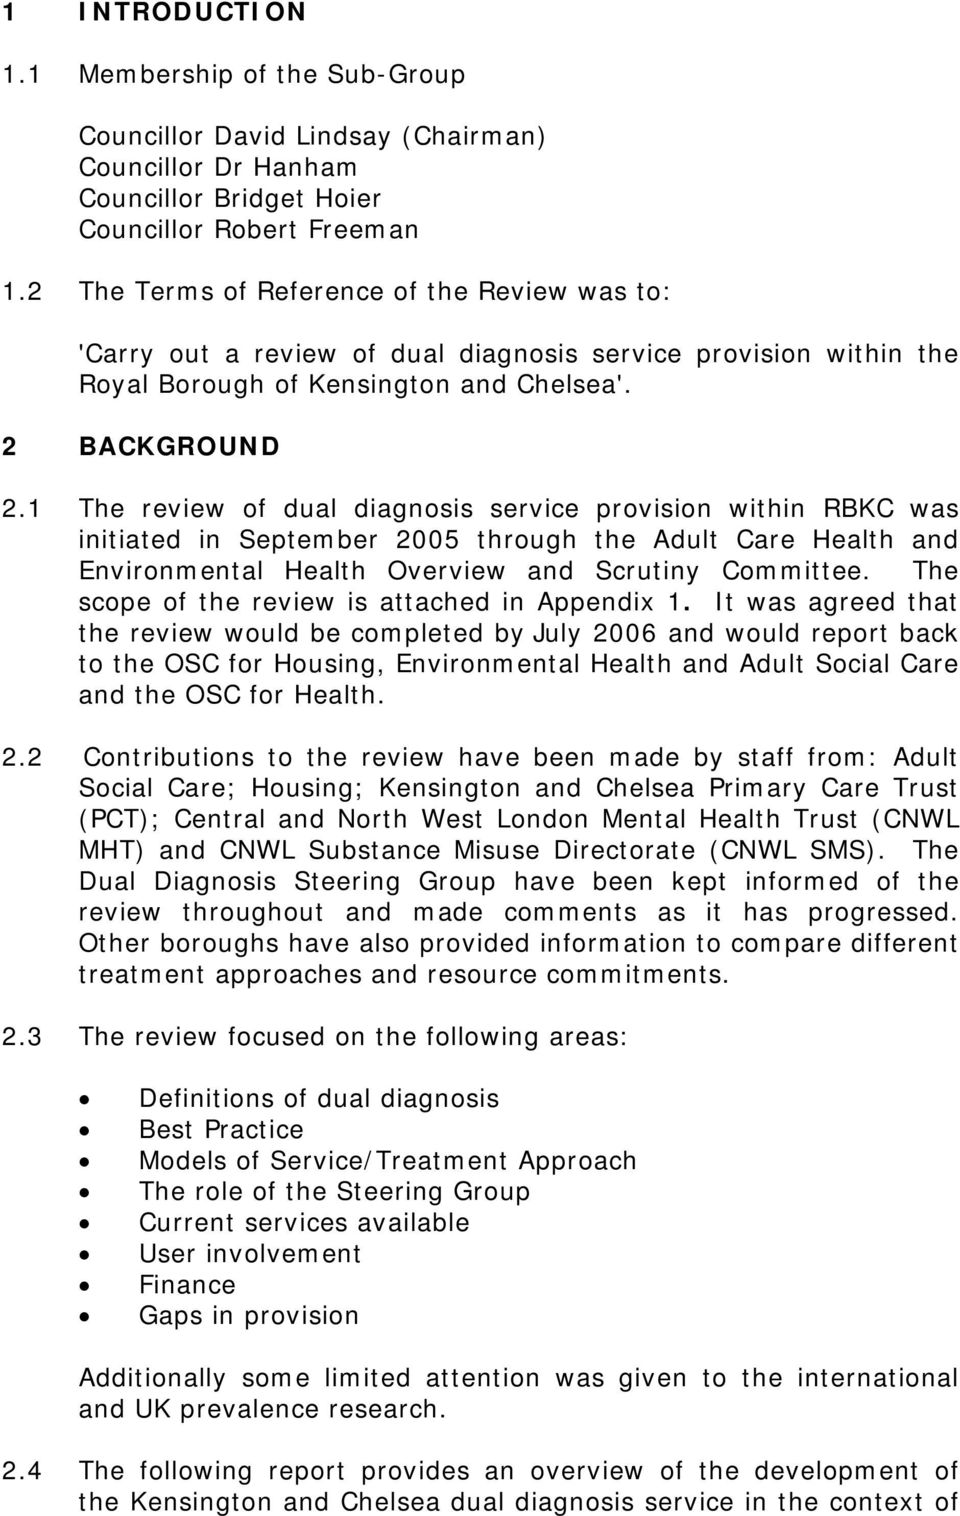 1 The review of dual diagnosis service provision within RBKC was initiated in September 2005 through the Adult Care Health and Environmental Health Overview and Scrutiny Committee.